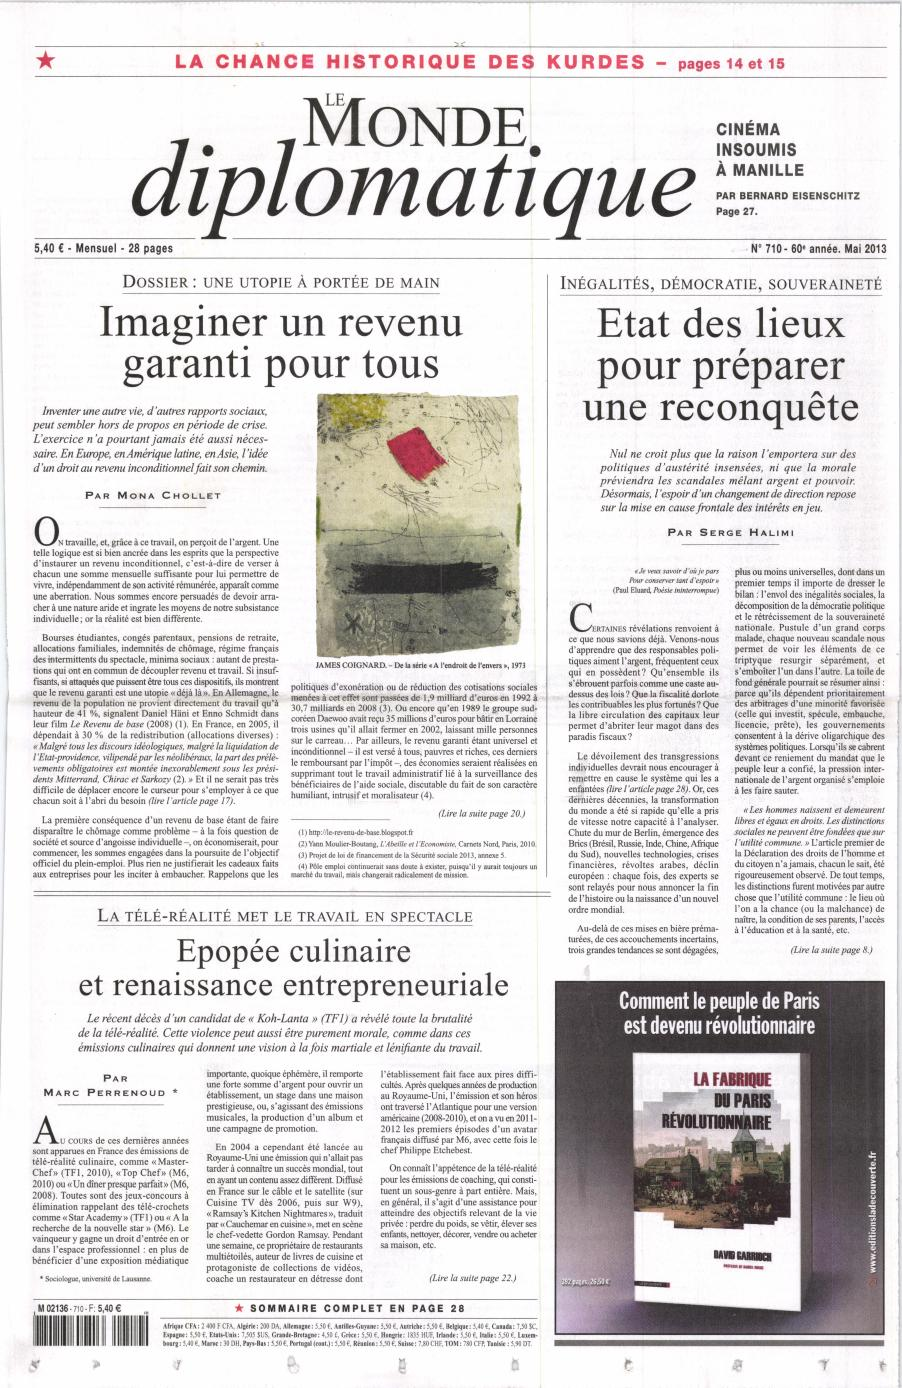 Le Monde Diplomatique N° 710 Avril 2013